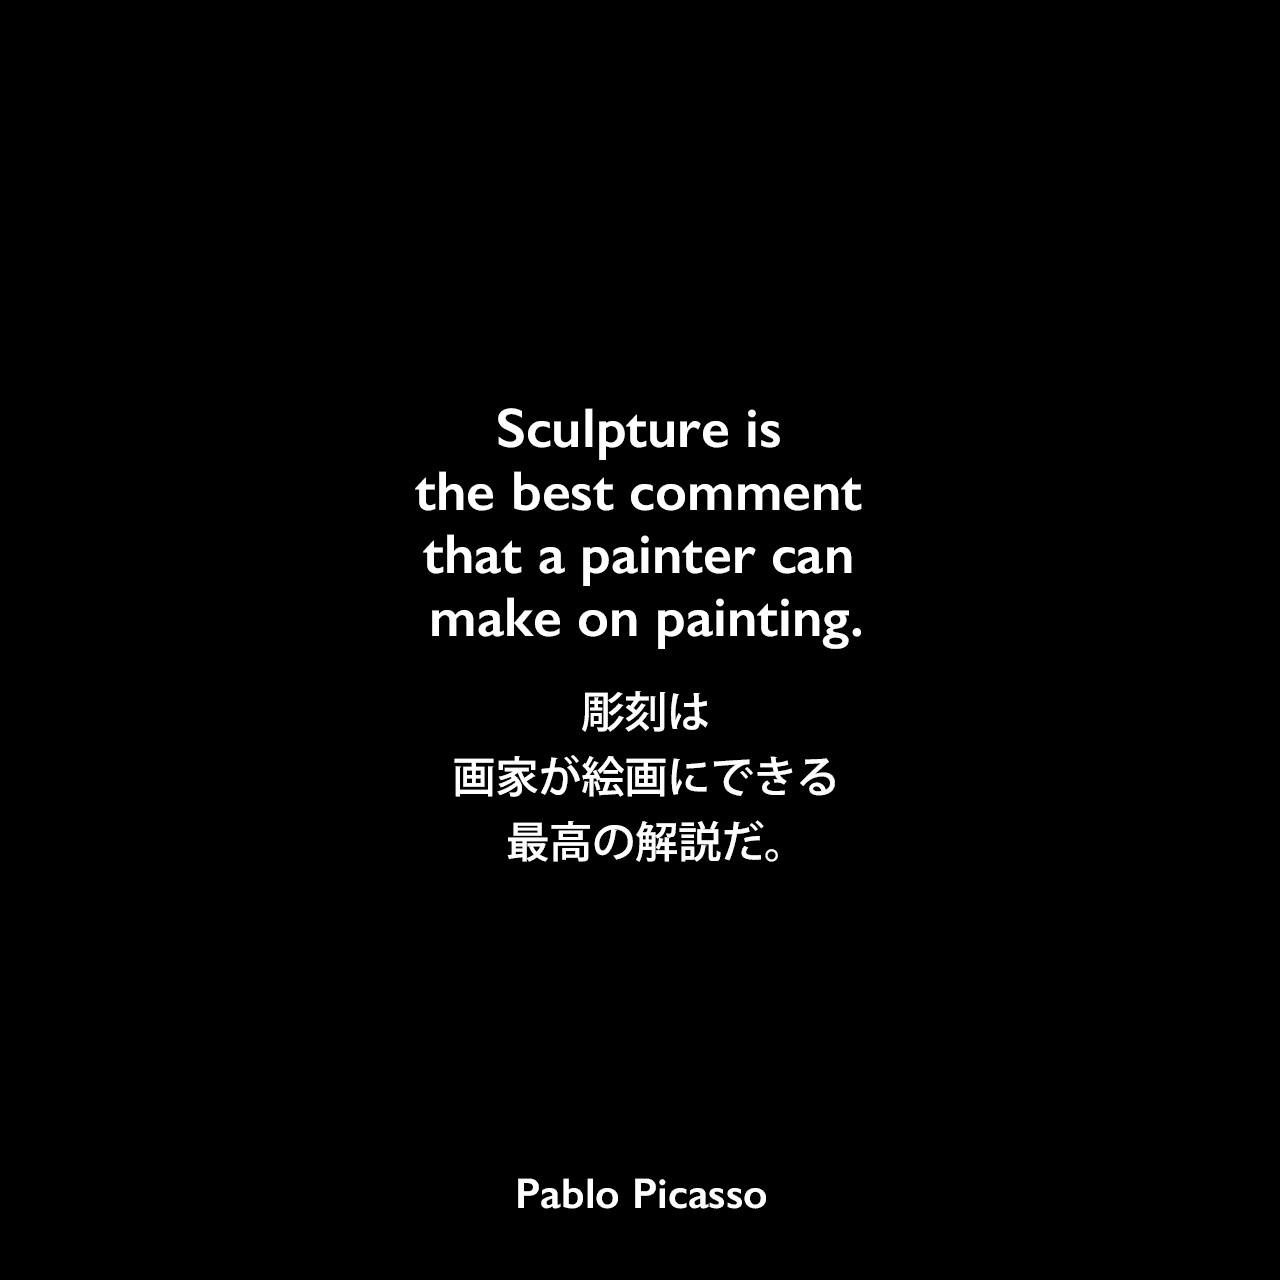 Sculpture is the best comment that a painter can make on painting.彫刻は、画家が絵画にできる最高の解説だ。Pablo Picasso